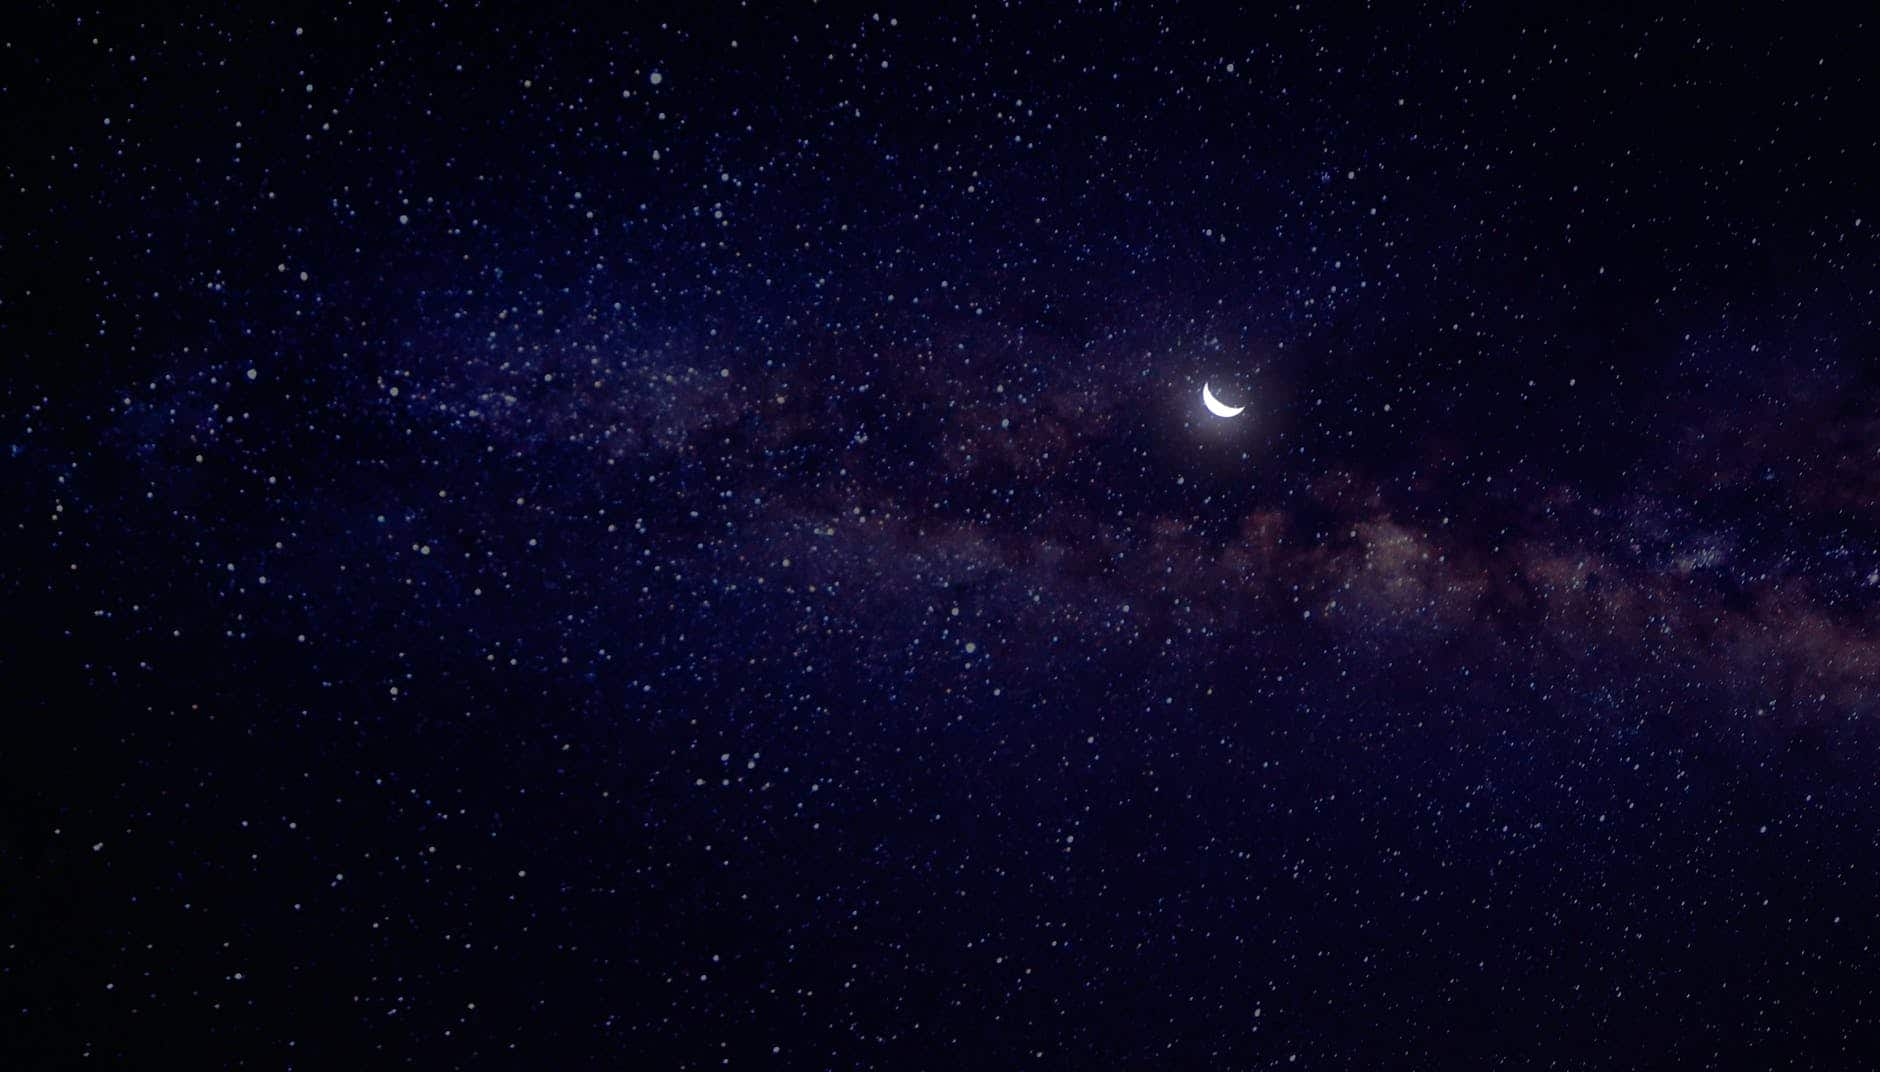 simple image of the moon and galaxy